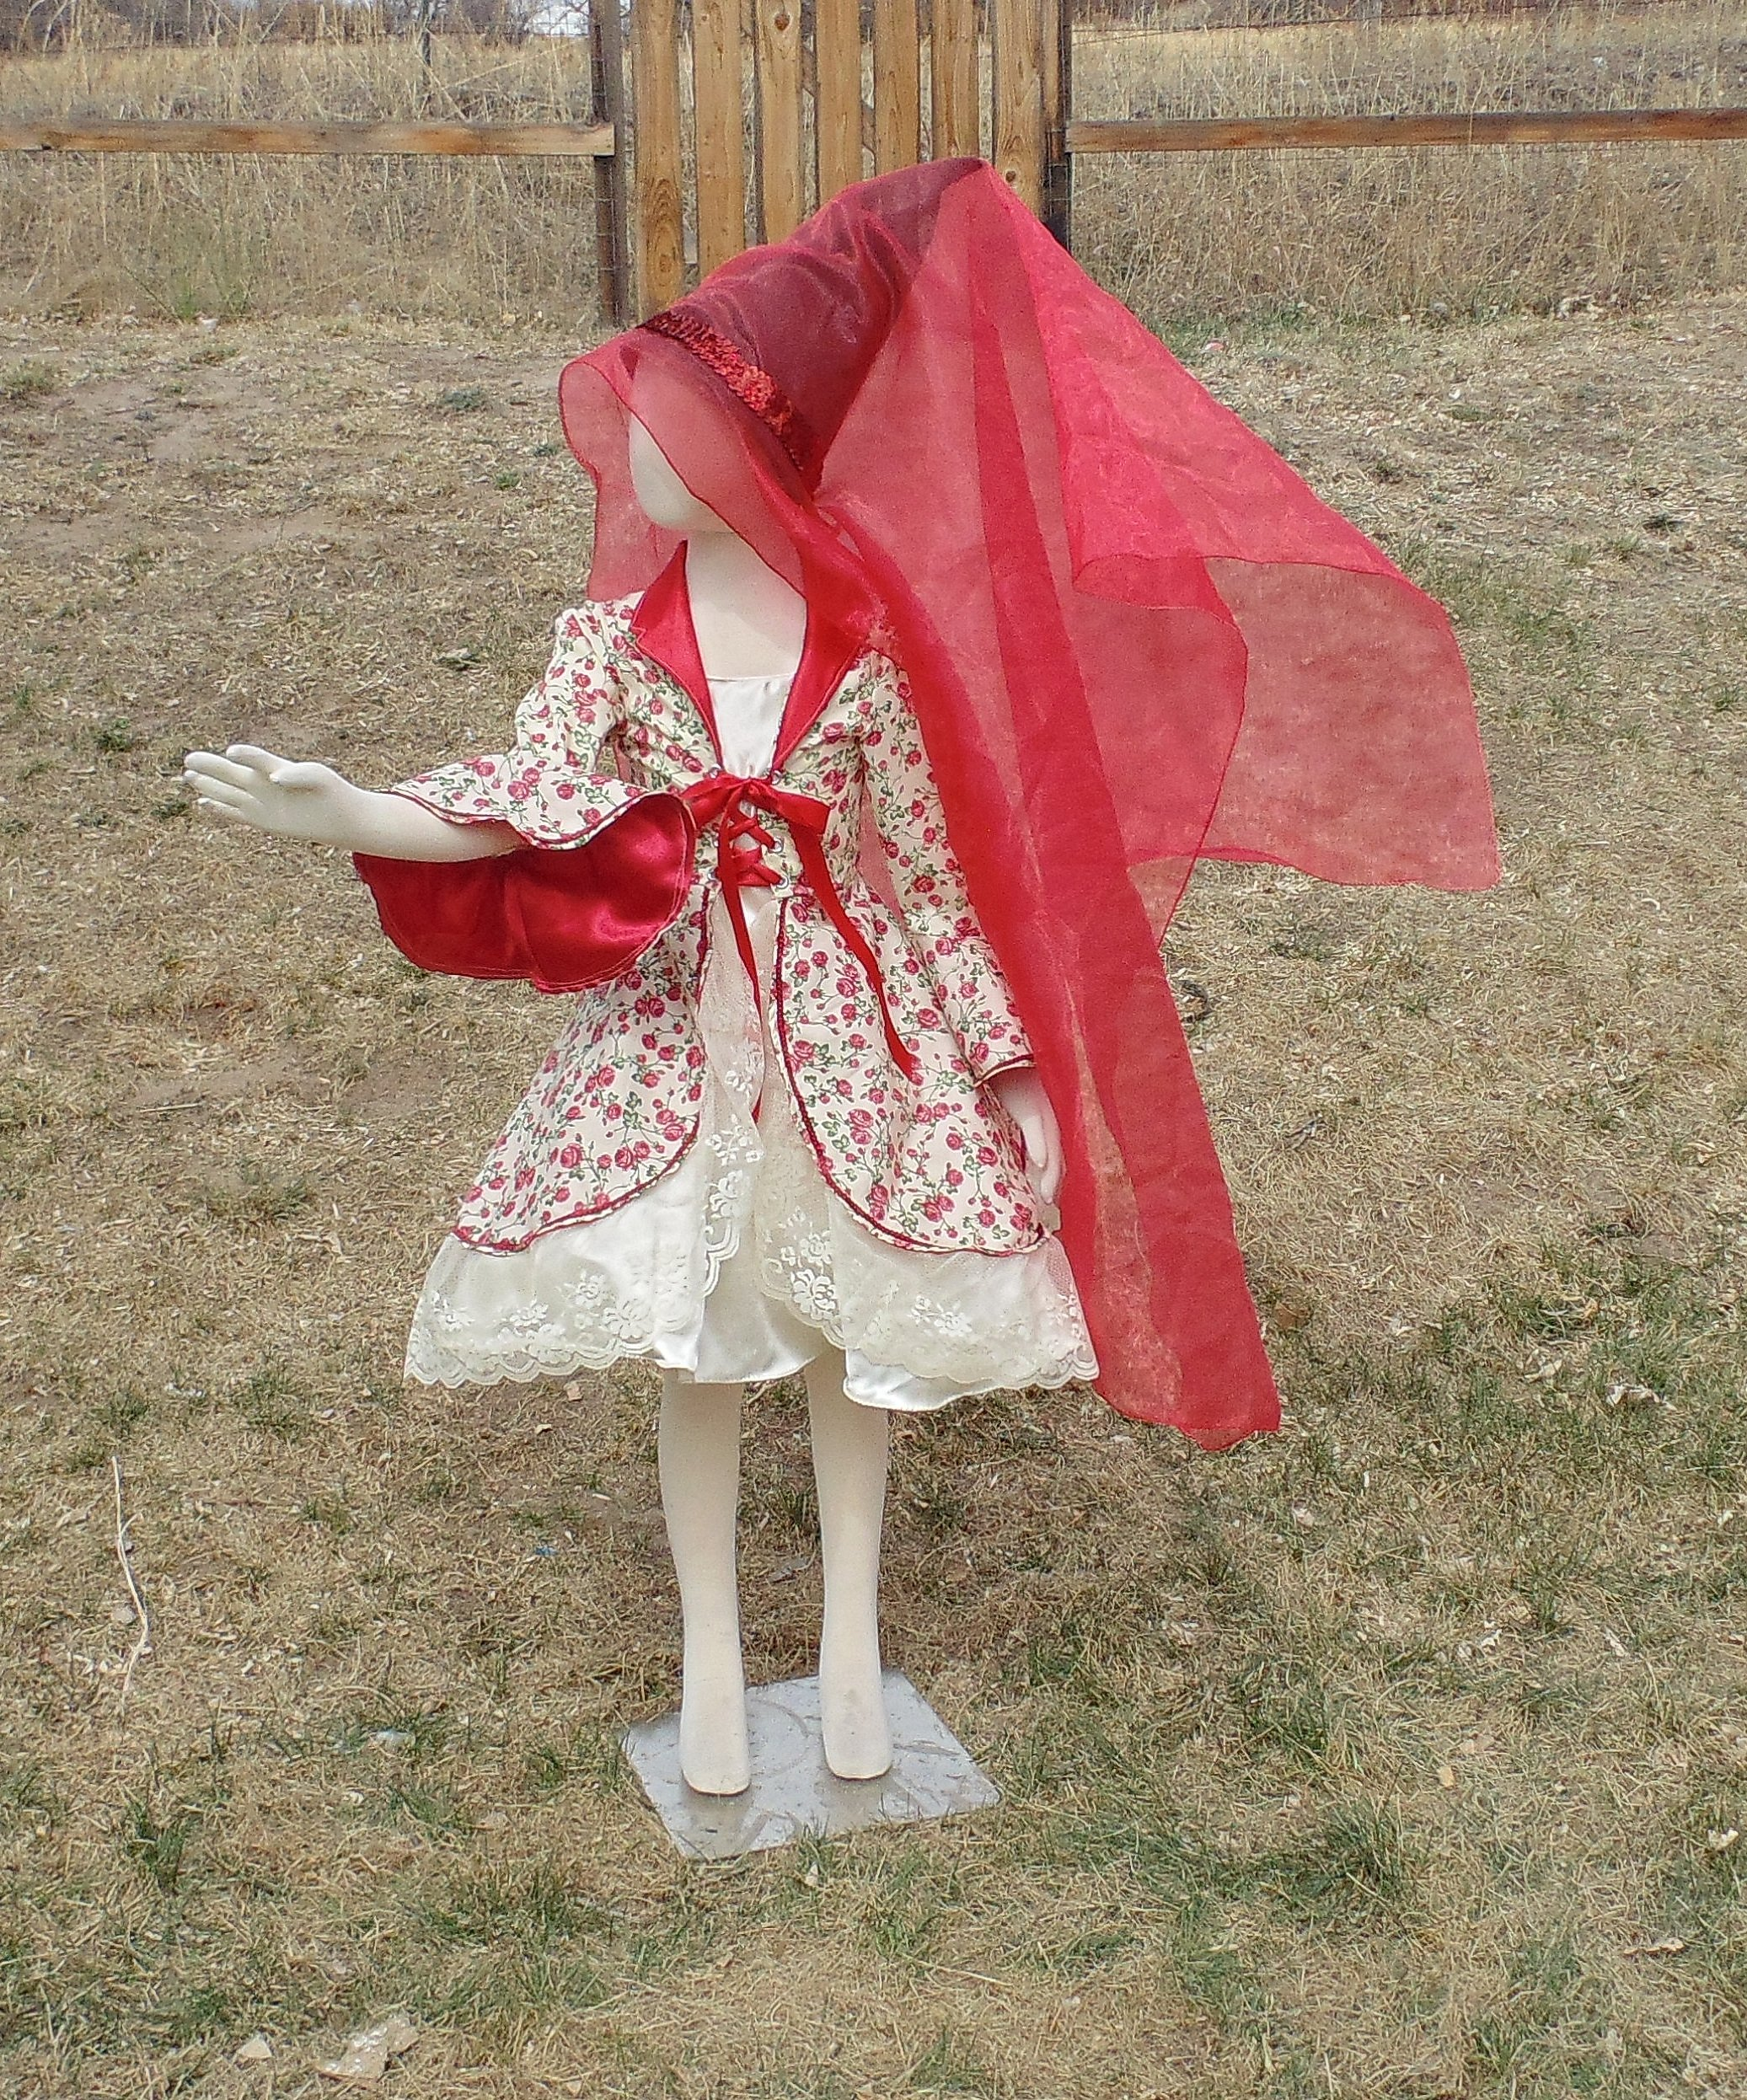 Girls 6-8 4 piece Cream and Roses Princess with Hat and attached Veil